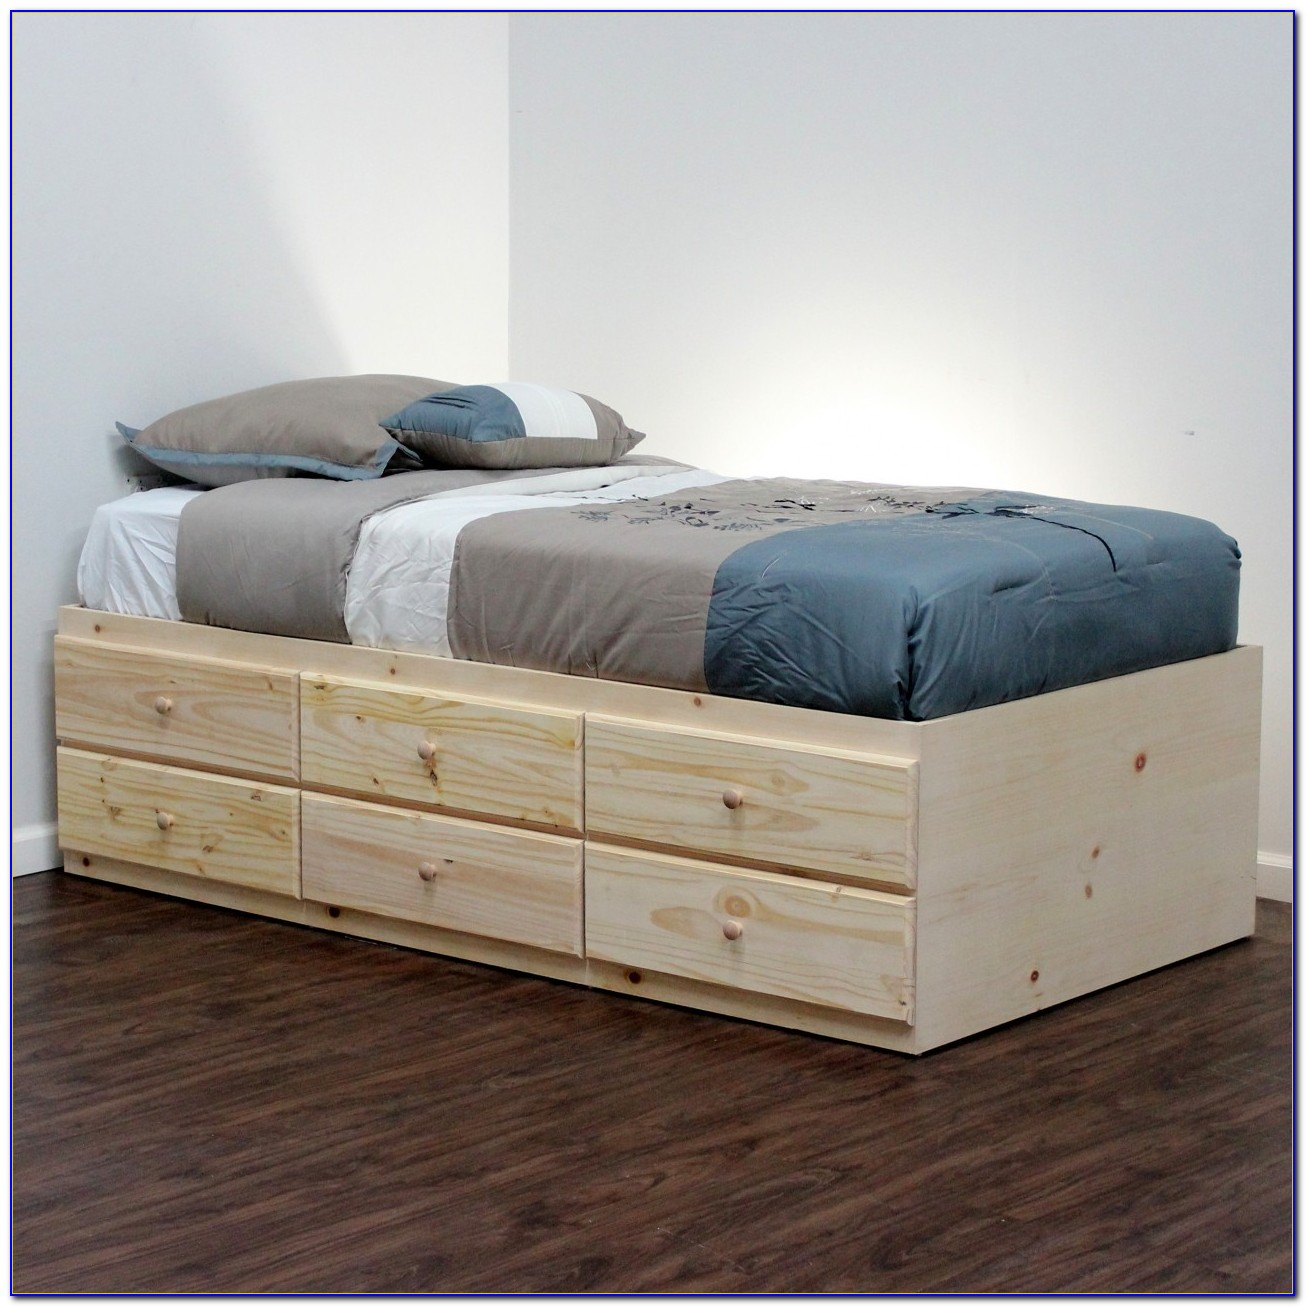 xl-twin-bed-frame-ikea